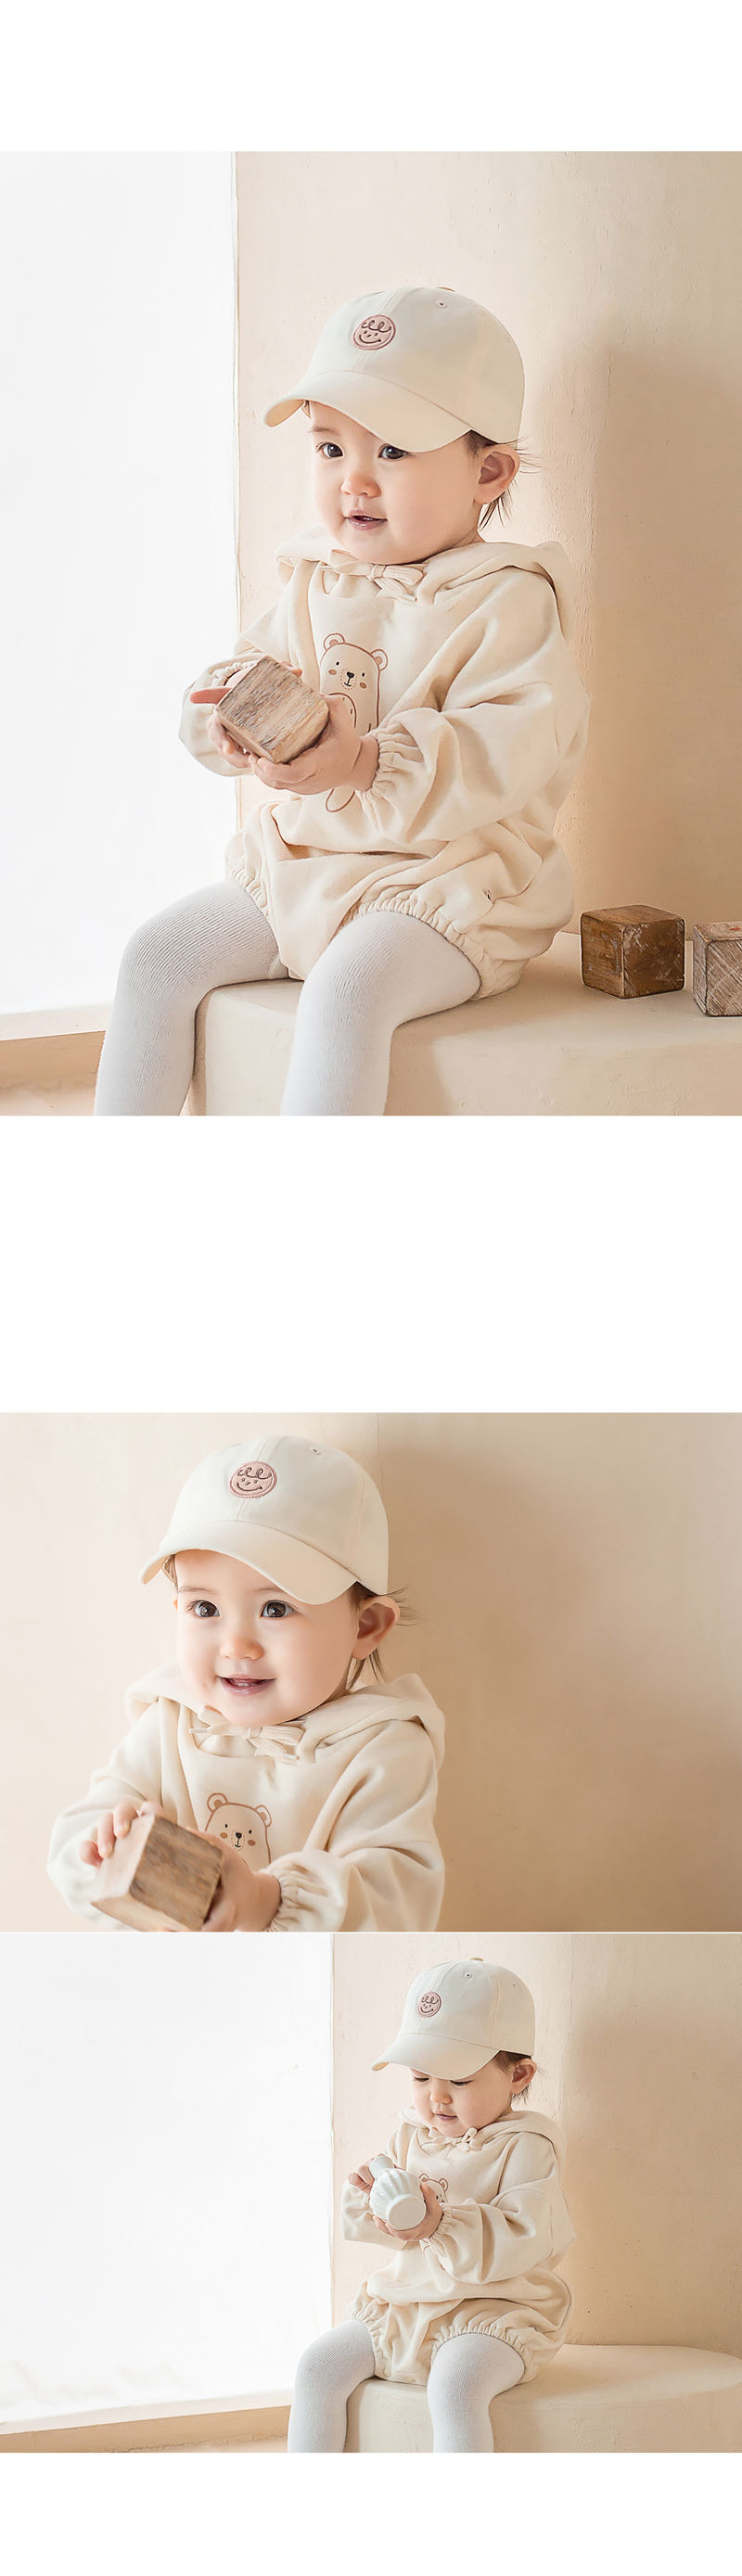 HAPPY PRINCE - Korean Children Fashion - #Kfashion4kids - Din Din Baby Ball Cap - 3